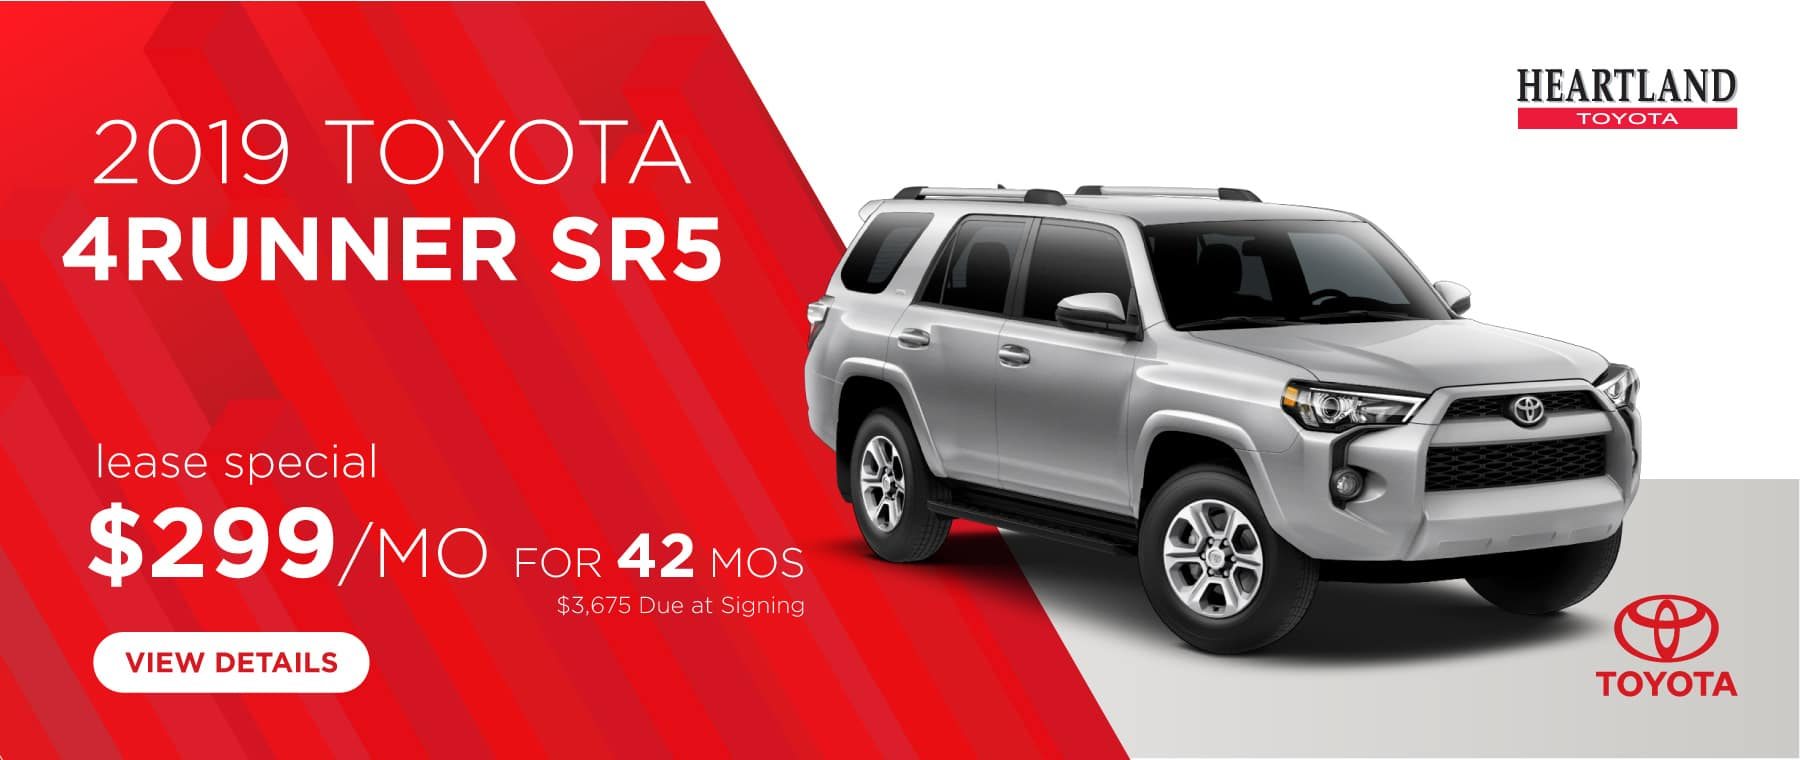 2019 Toyota 4Runner SR5 $299/mo. For 42 months* *Offer valid on 2019 Toyota 4Runner SR5. $299 per mo. for 42 months. Lease with $3,675 due at signing; includes a $695 acquisition fee. MSRP starting at $37,380. Deal #393594. Subject to credit approval. No Security deposit required. Excludes taxes, title, and fees. Valid on VIN: JTEBU5JR5K5658907, JTEBU5JR0K5655347, JTEBU5JR0K5664095. 42 monthly payments required. Not all lessees will qualify for lowest payment through participating lender. Residency restrictions apply. Lessee responsible for mileage over 10,000 miles per year at $0.25/mile per year. Option to purchase at lease end. A negotiable dealer documentary service fee of up to $150 may be added to the sale price or capitalized cost. Offer expires 4/30/2019.